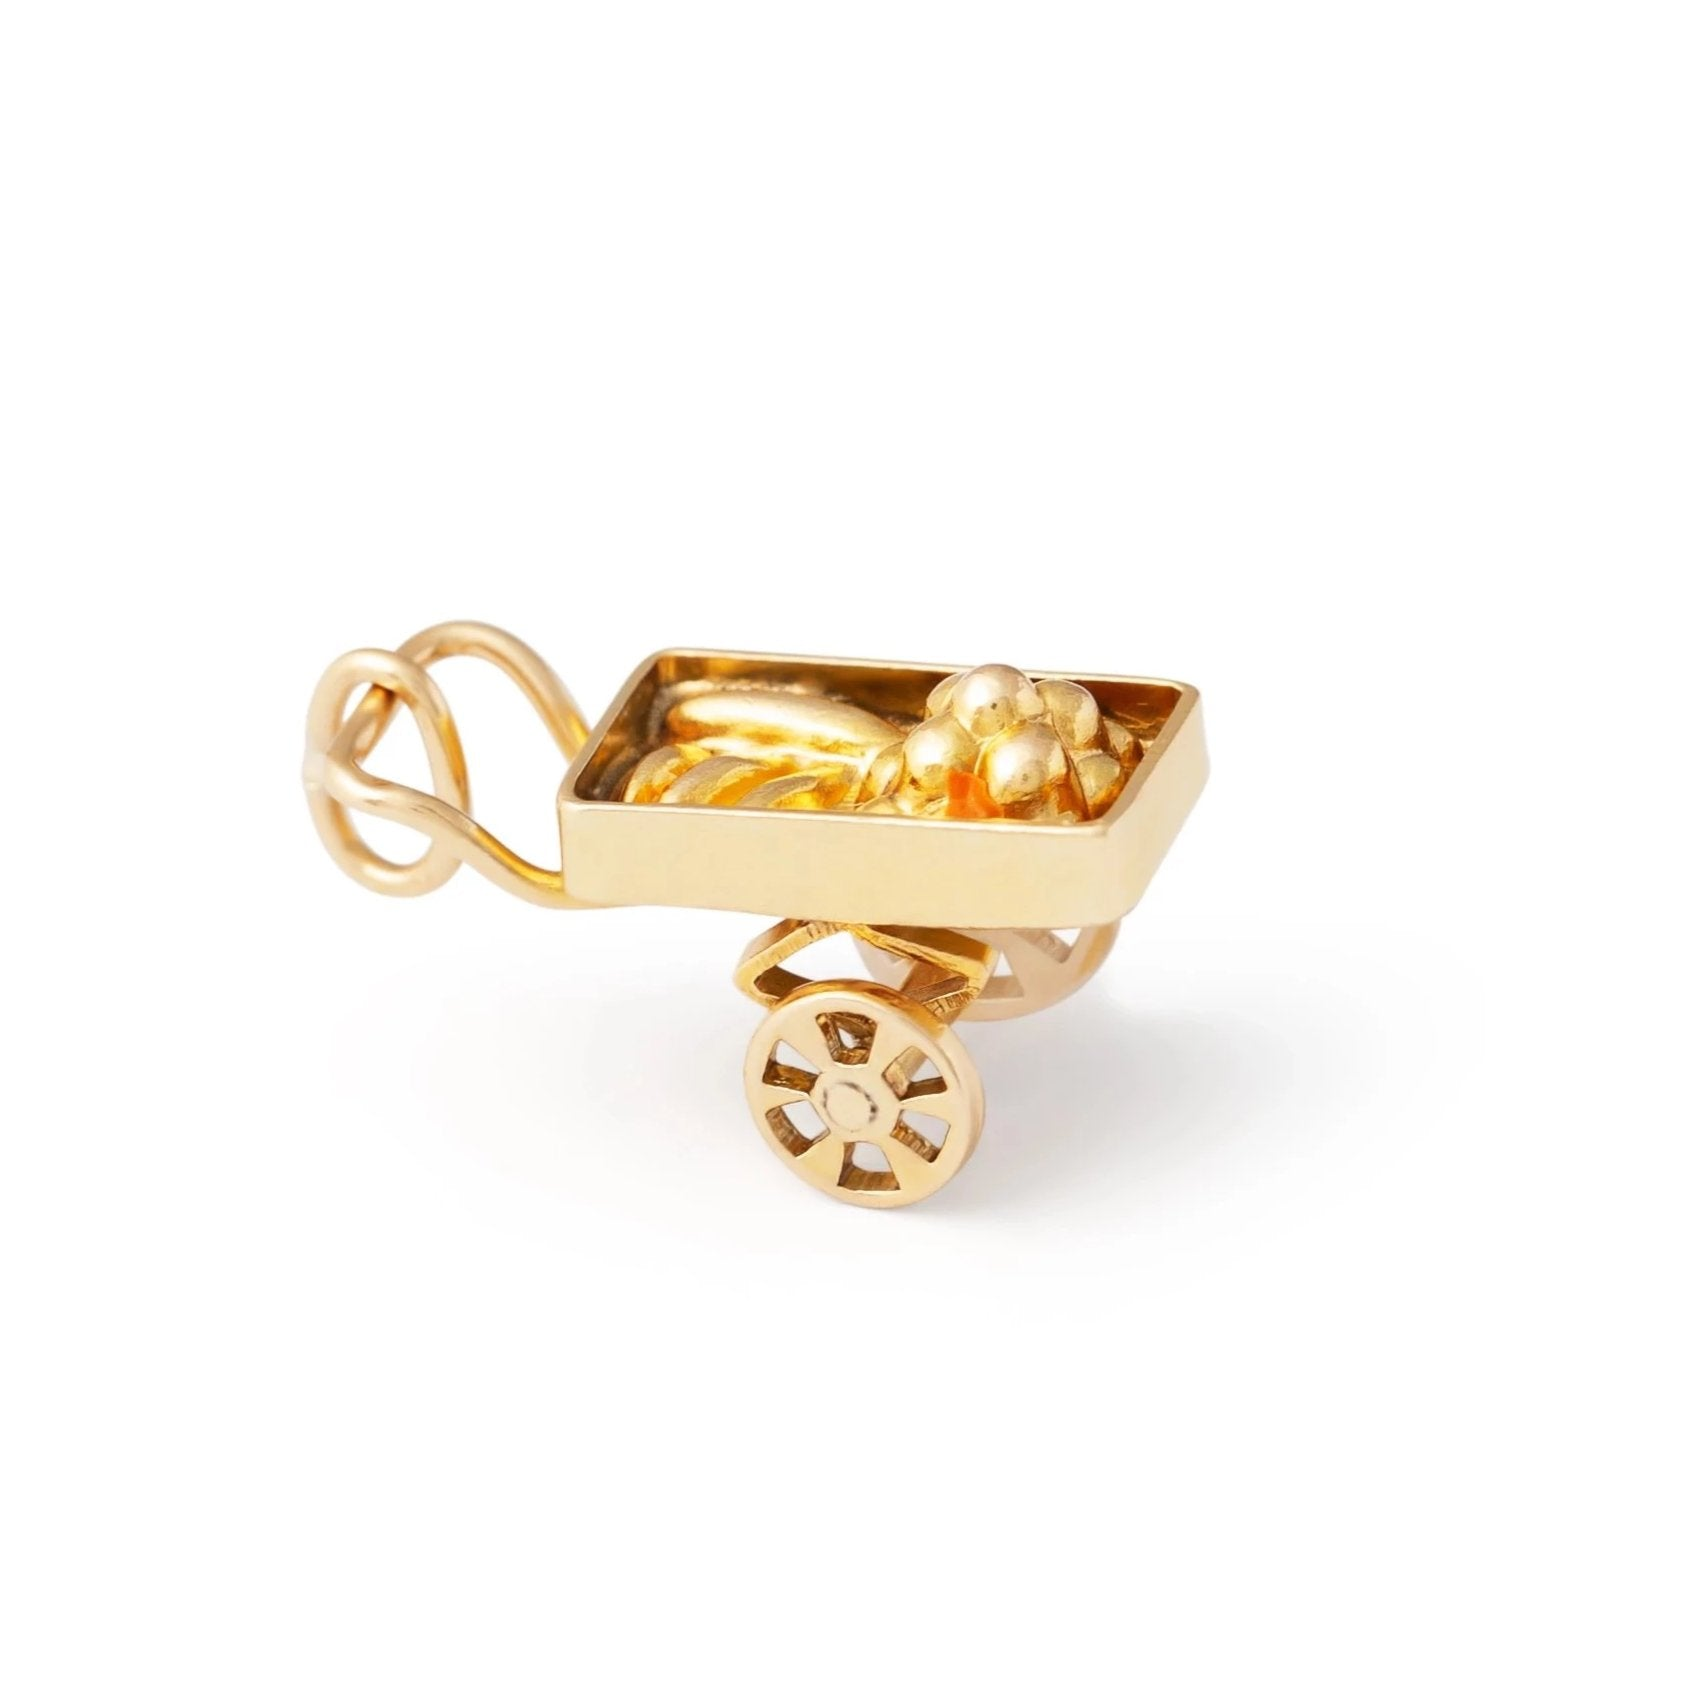 Enamel Fruit Cart and 14k Gold Charm